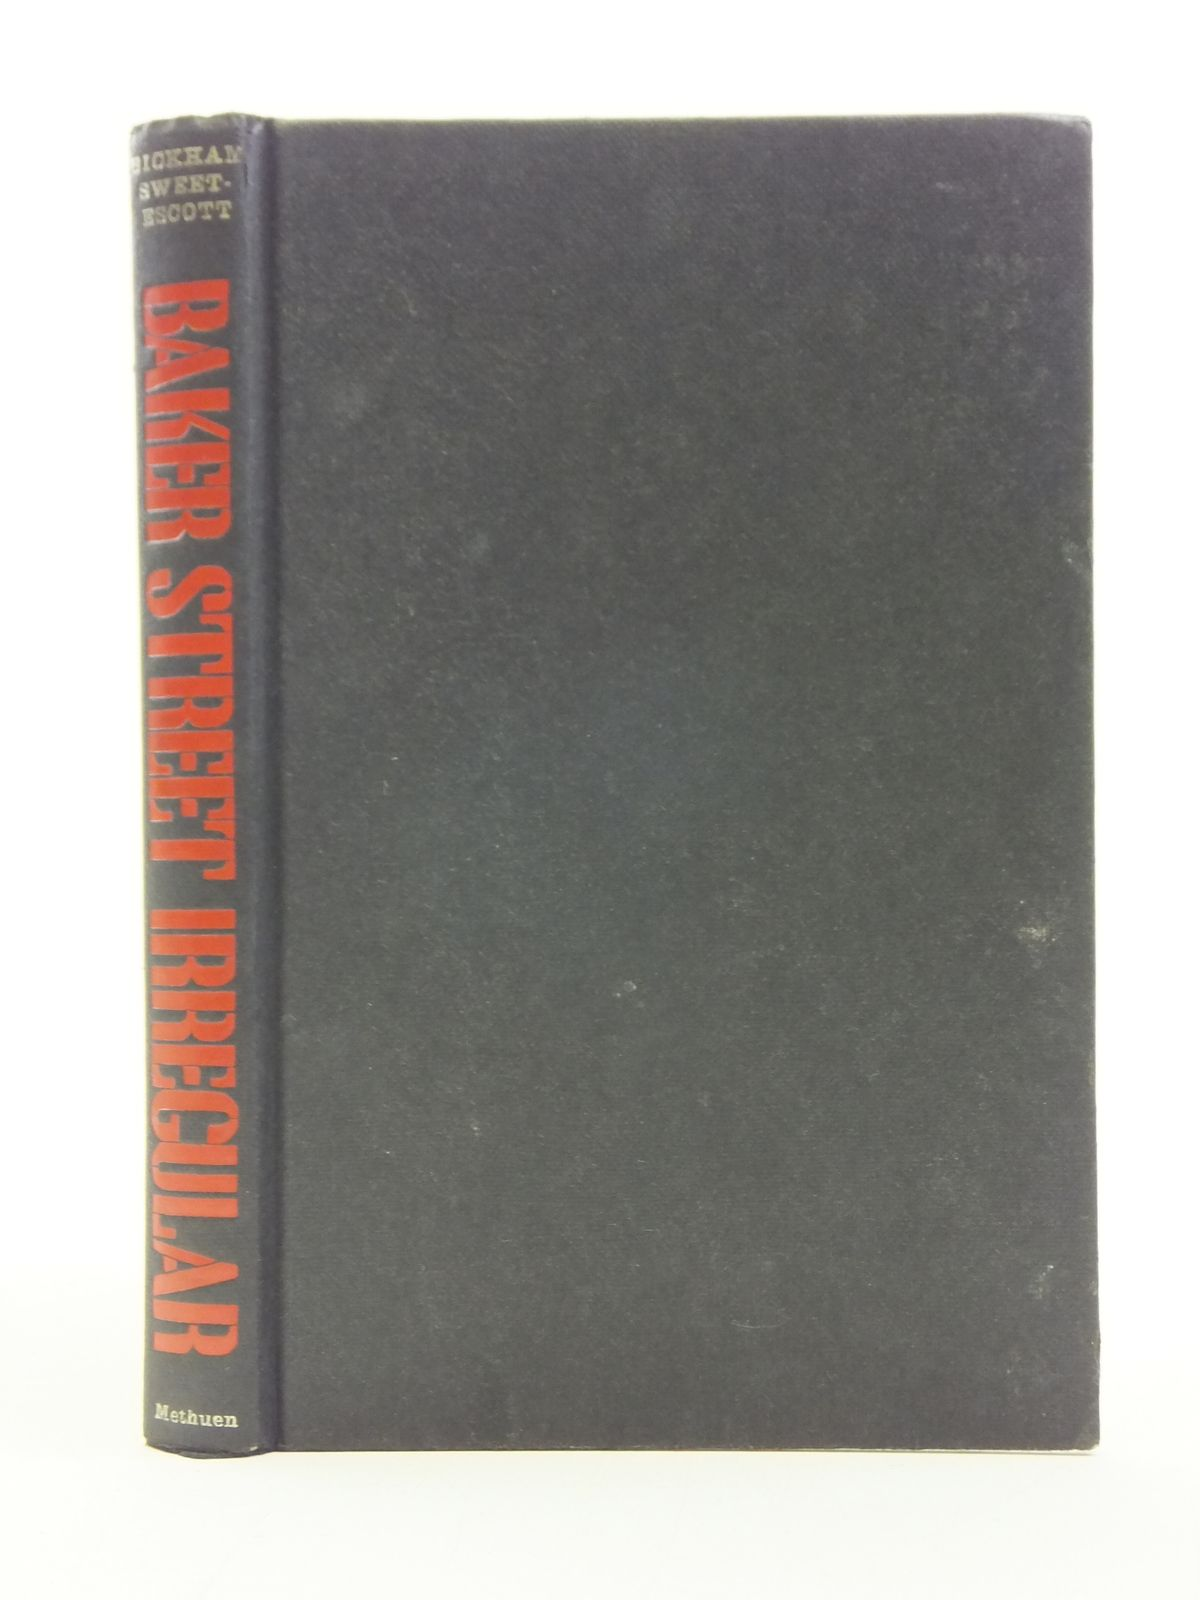 Photo of BAKER STREET IRREGULAR written by Sweet-Escott, Bickham published by Methuen & Co. Ltd. (STOCK CODE: 2113898)  for sale by Stella & Rose's Books